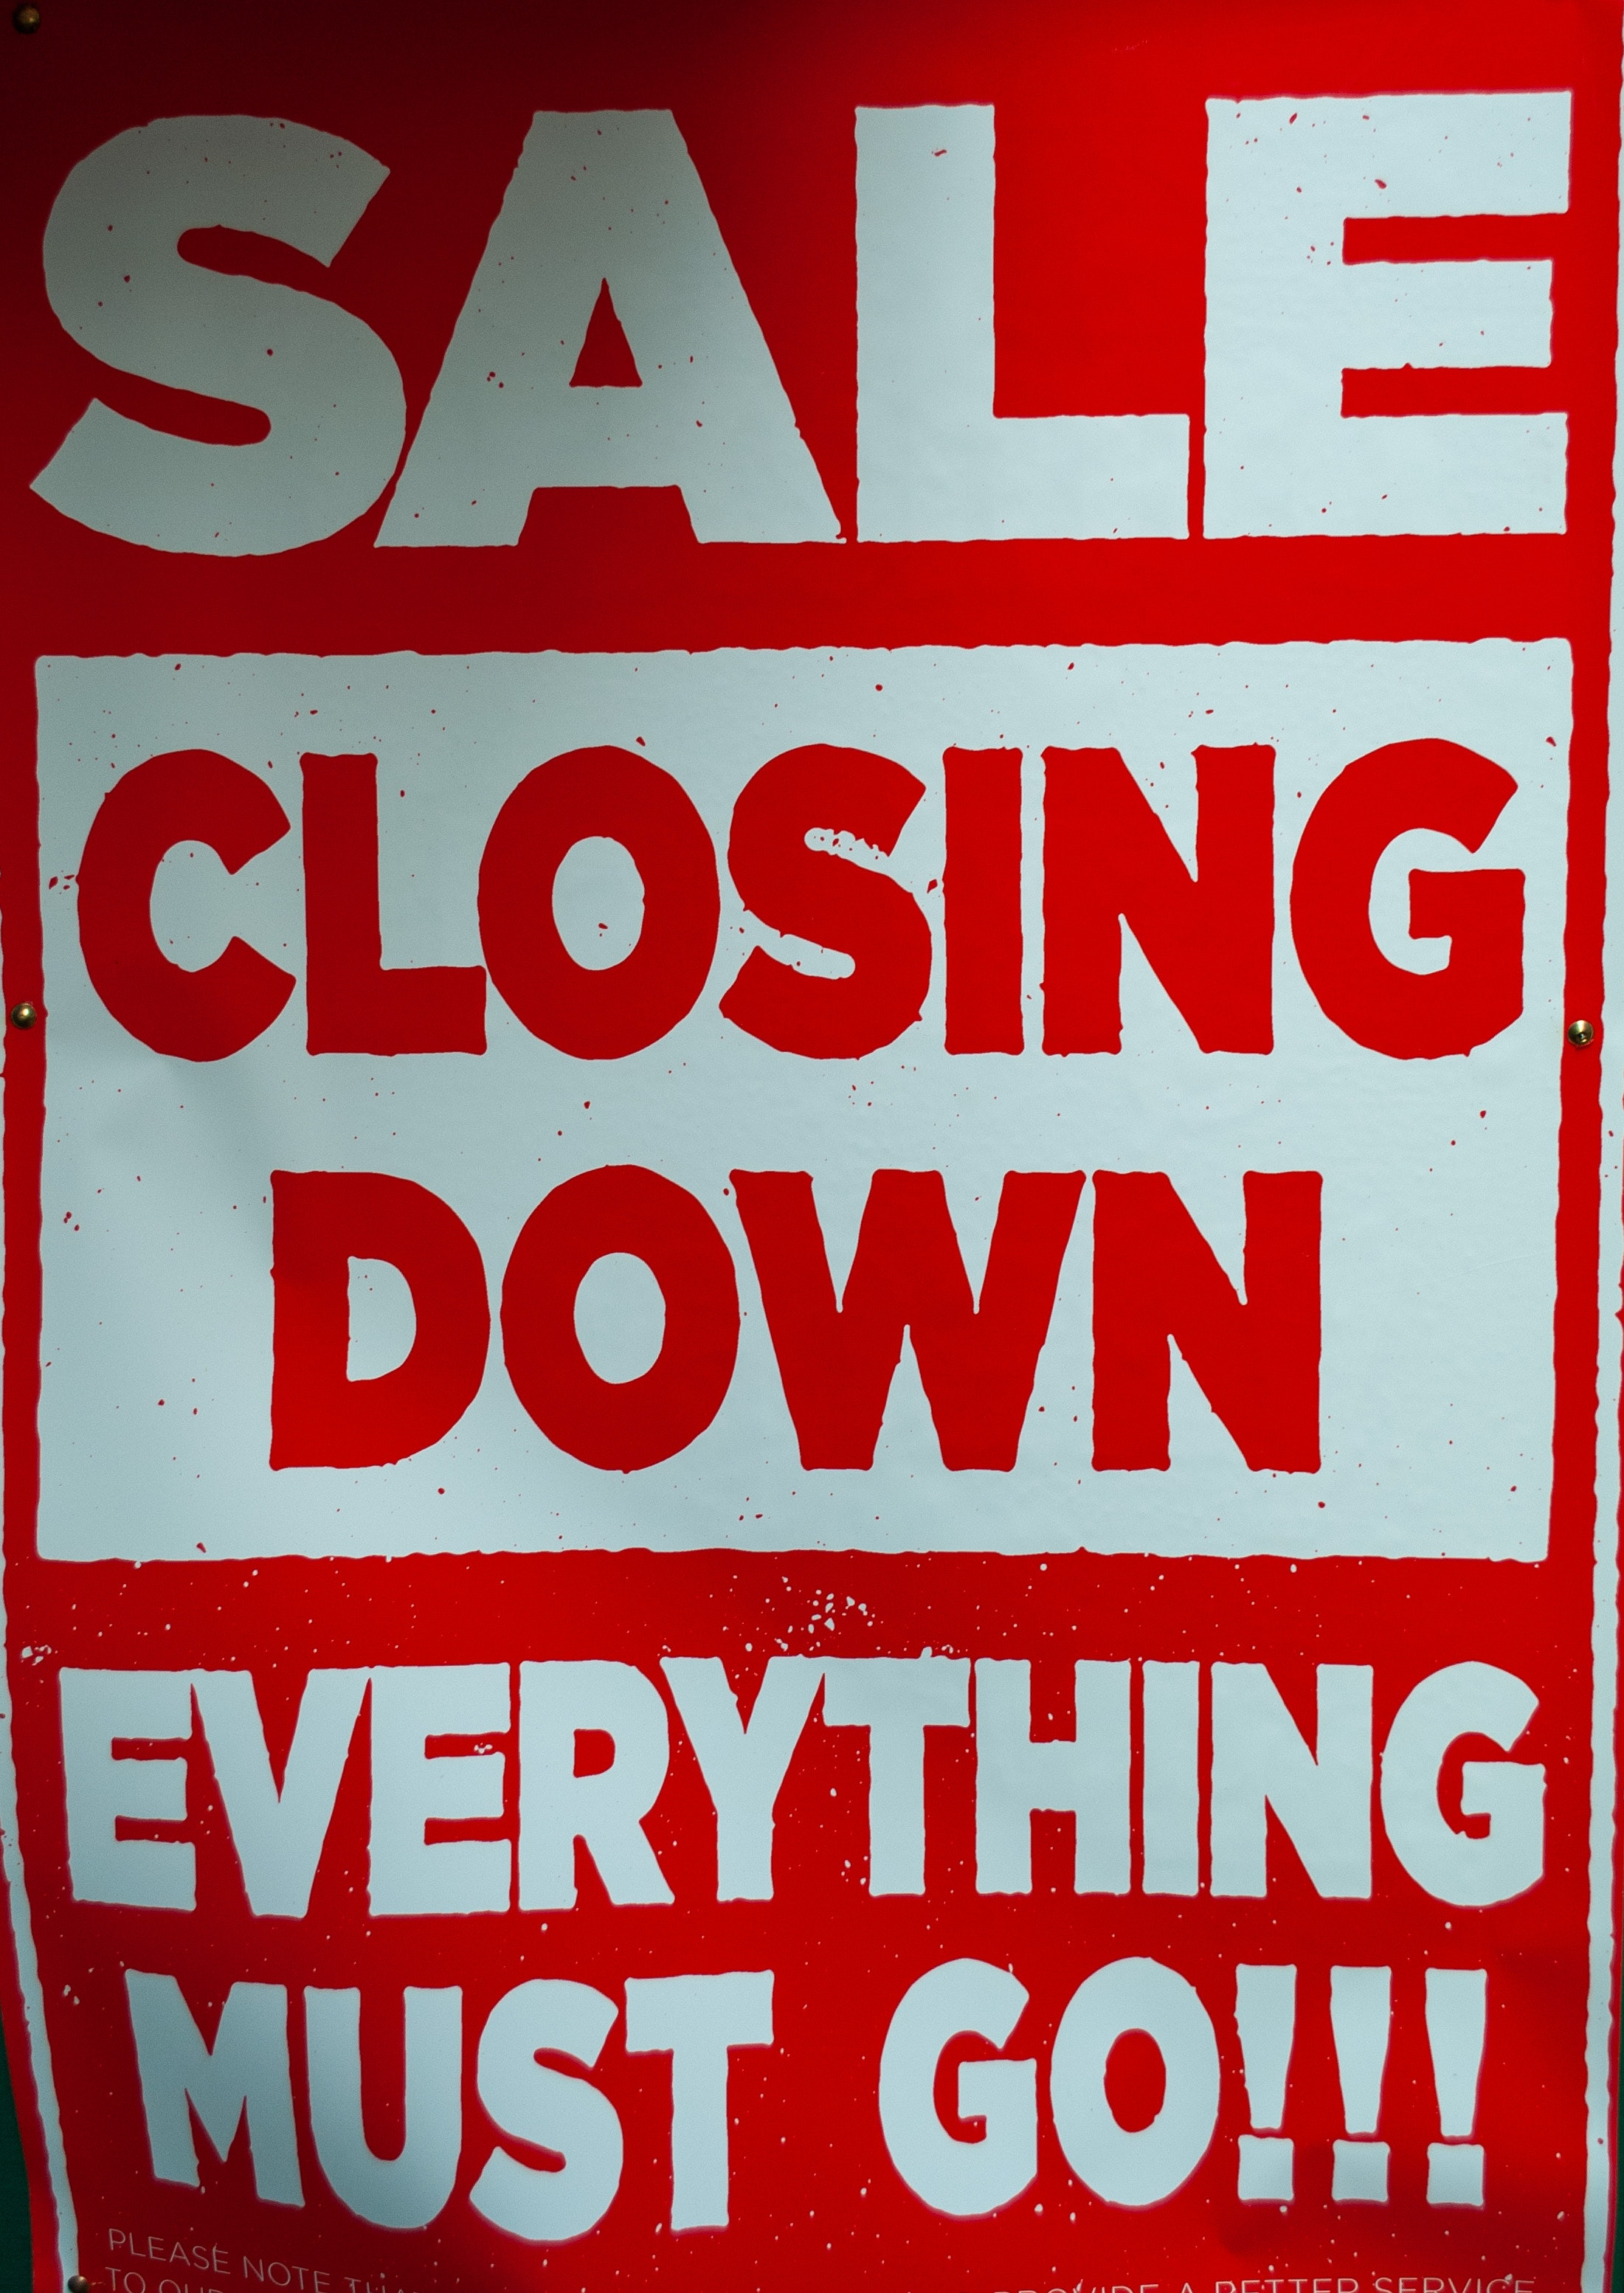 poster-posters-sale-closing-3659991